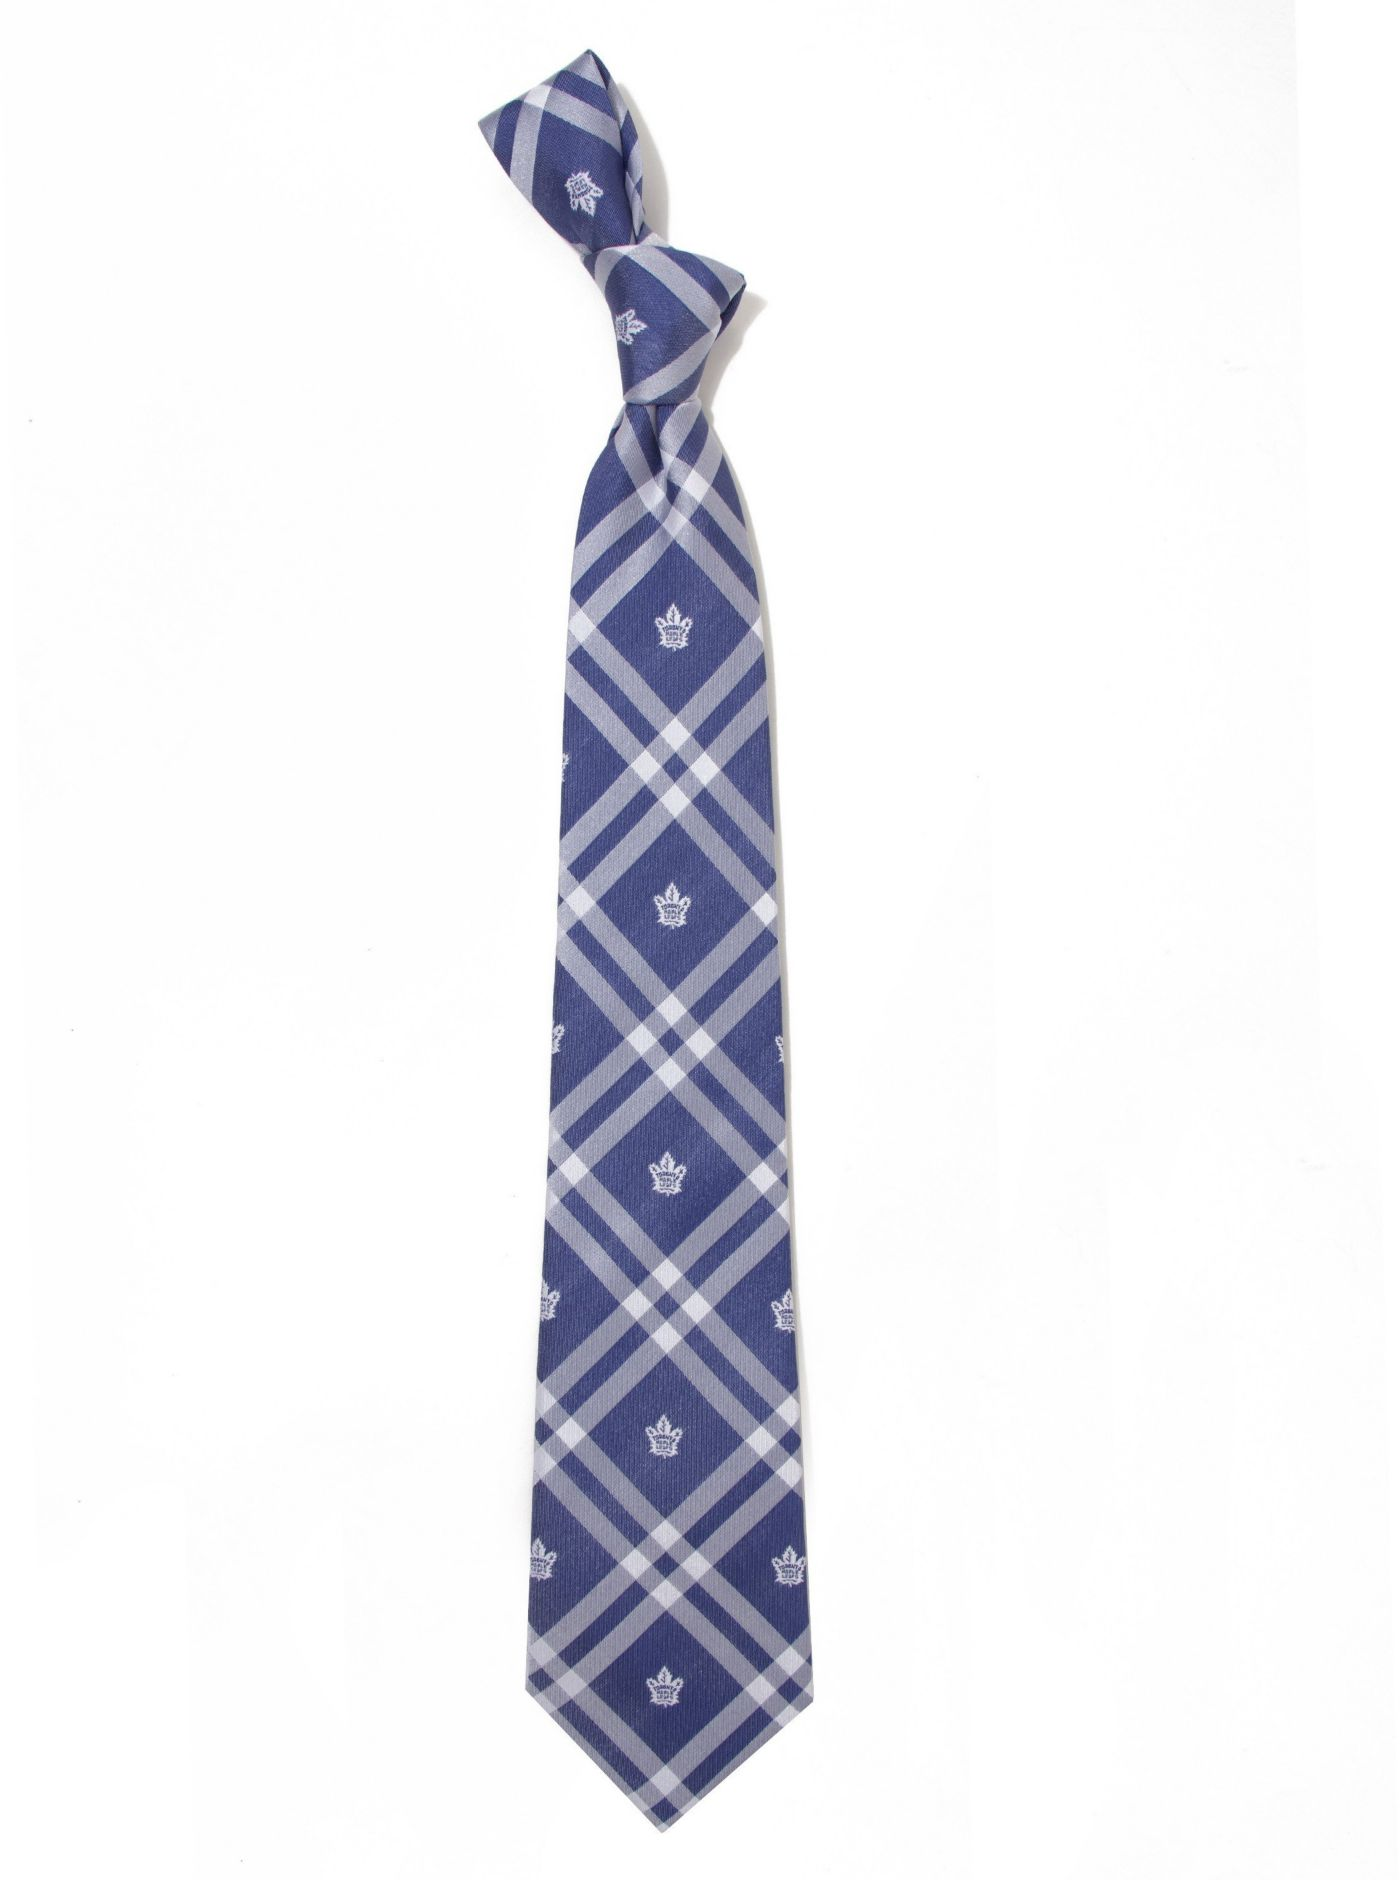 Eagles Wings Toronto Maple Leafs Woven Polyester Necktie